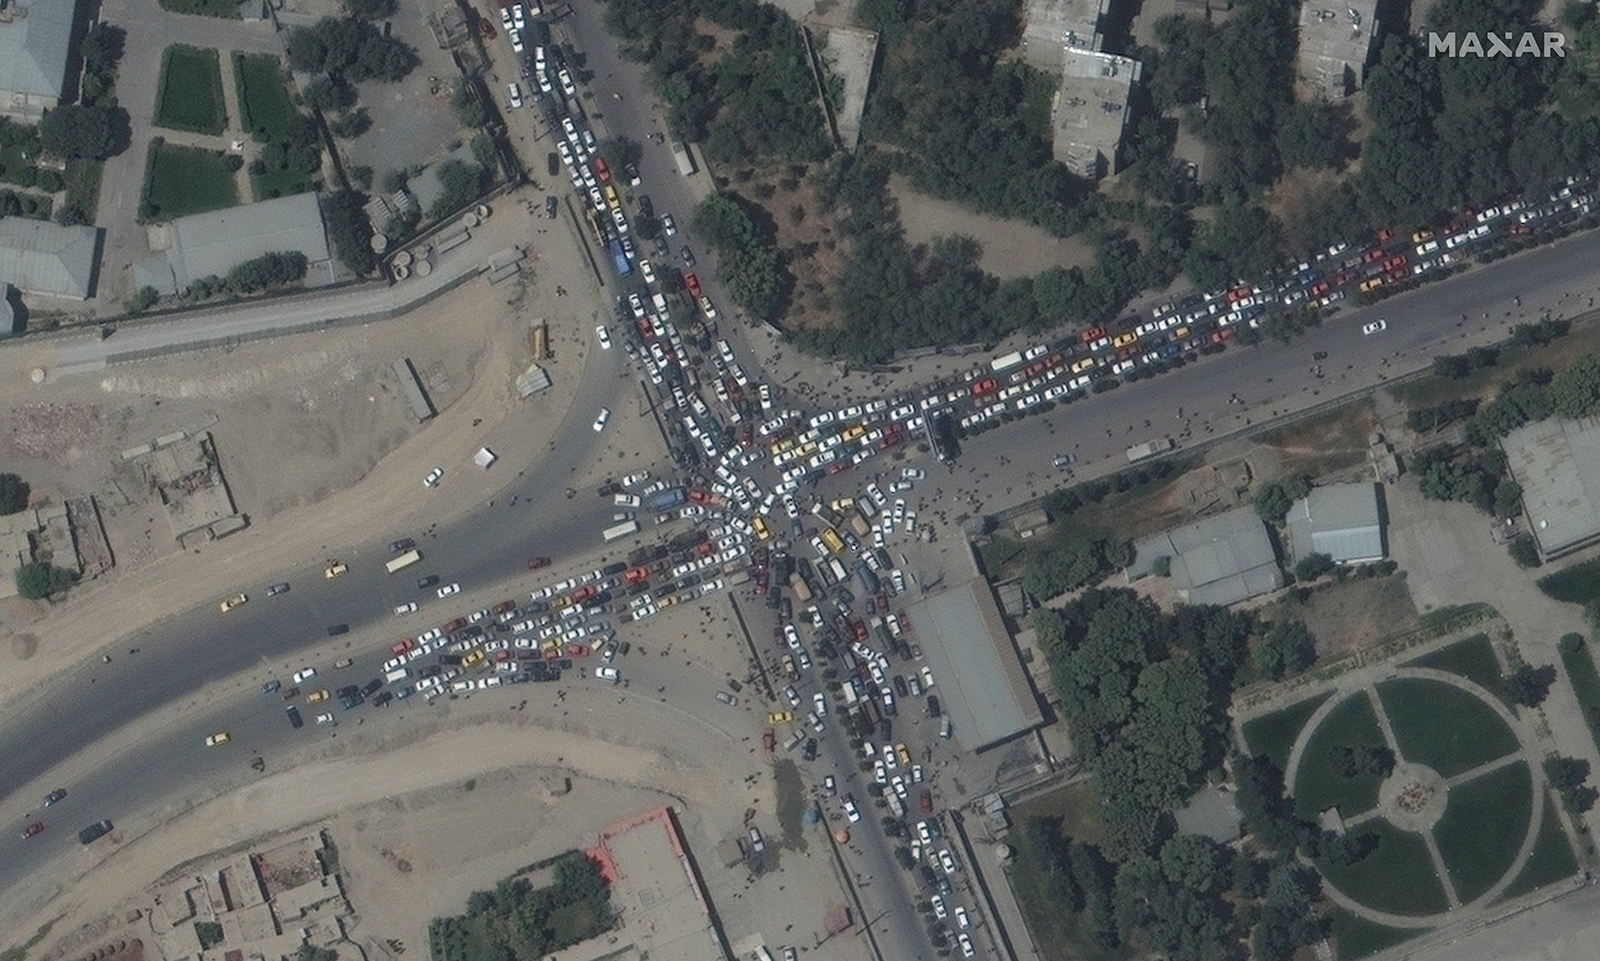 A traffic jam is seen near the airport.